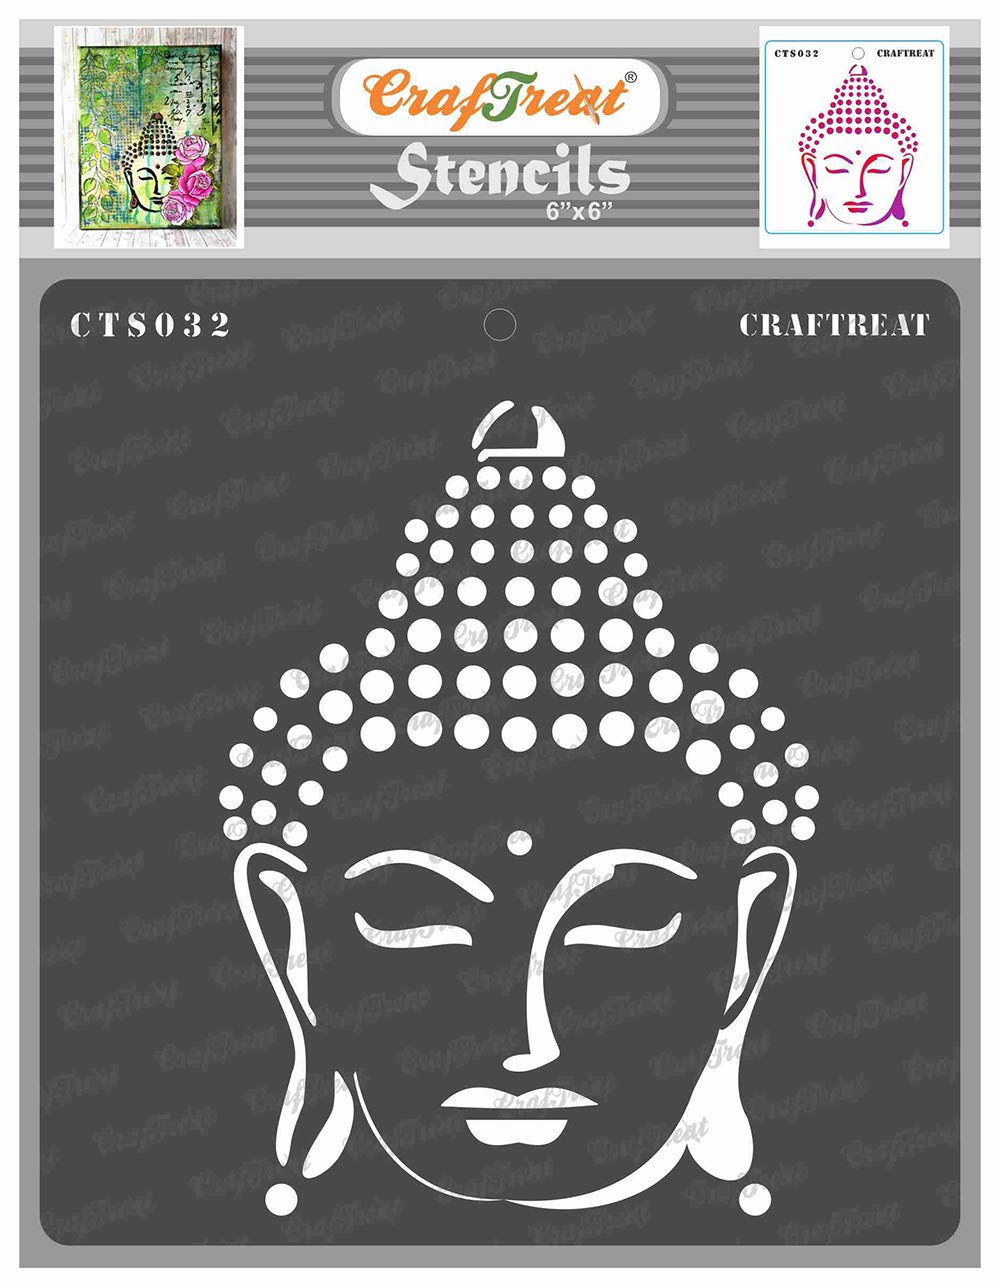 CrafTreat Buddha Stencils for Painting on Wood, Canvas, Paper, Fabric, Floor, Wall and Tile - Buddha - 6x6 Inches - Reusable DIY Art and Craft Stencils for Home Décor - Buddhist Stencil